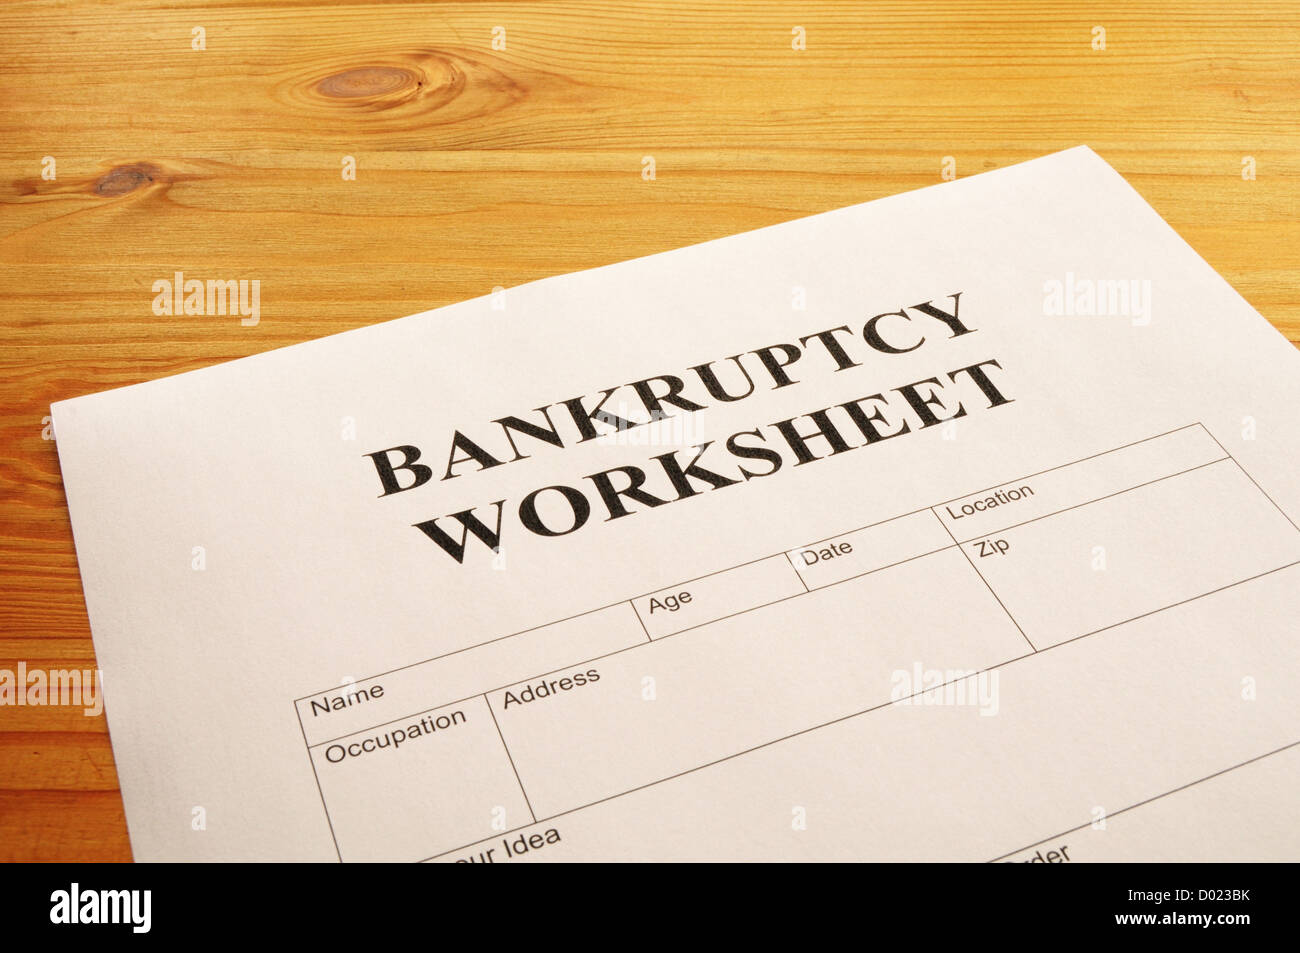 Printables Bankruptcy Worksheet bankruptcy worksheet form or document showing business concept stock photo concept